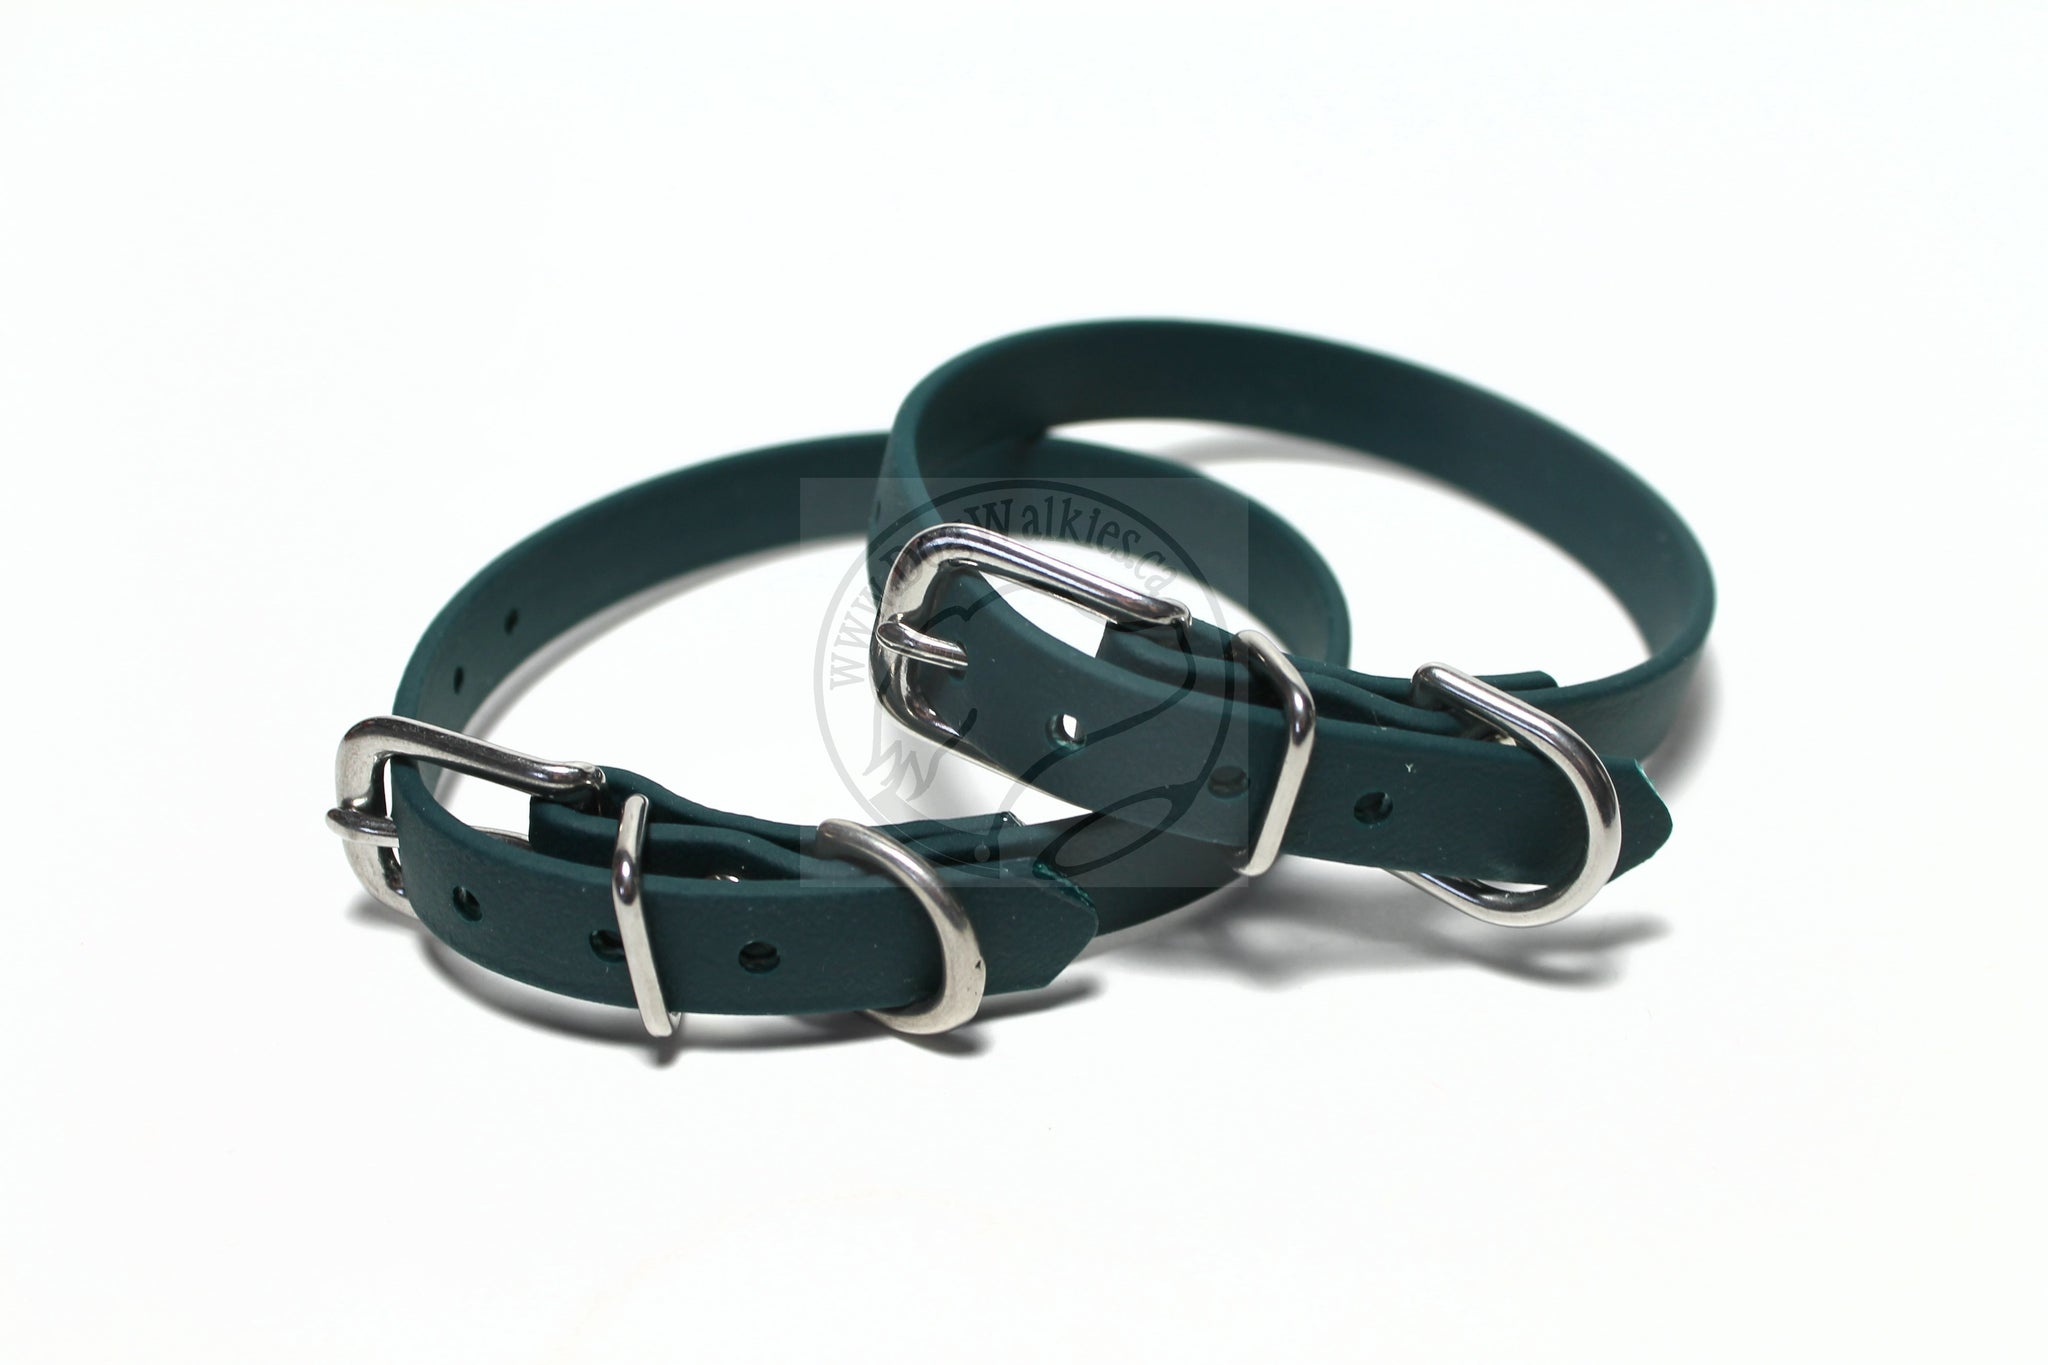 "Pine Green Biothane Small Dog Collar - 1/2"" (12mm) wide"